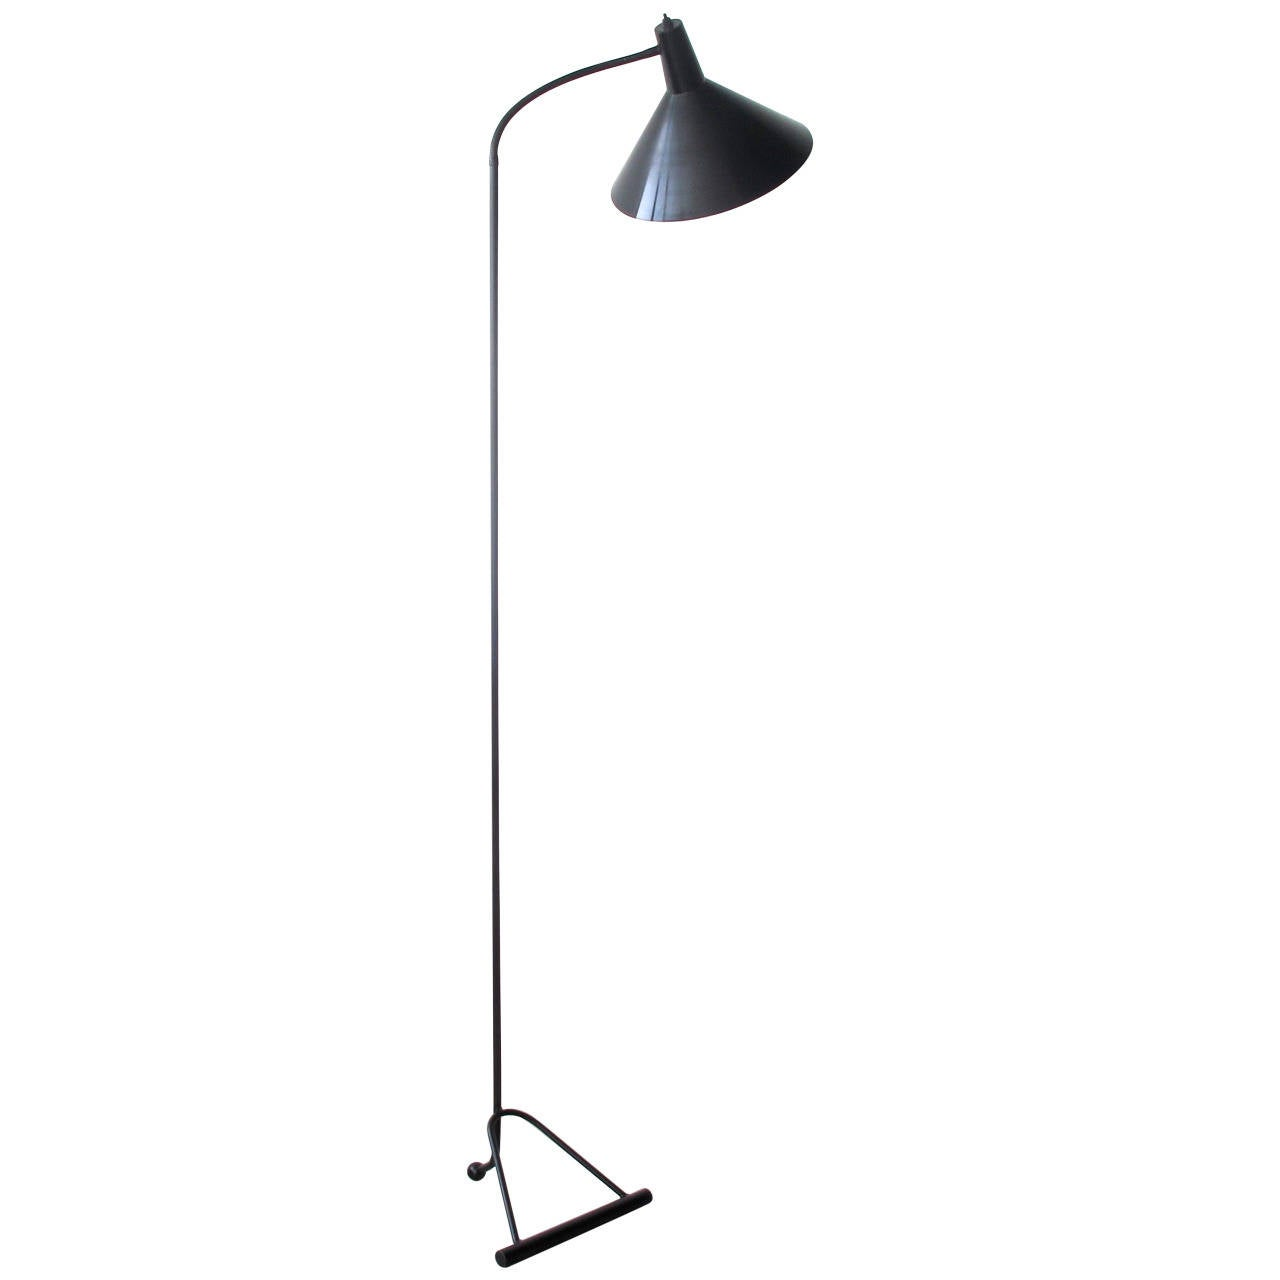 Modernist floor lamp by herman busquet for hala zeist 1954 at 1stdibs modernist floor lamp by herman busquet for hala zeist 1954 for sale mozeypictures Choice Image